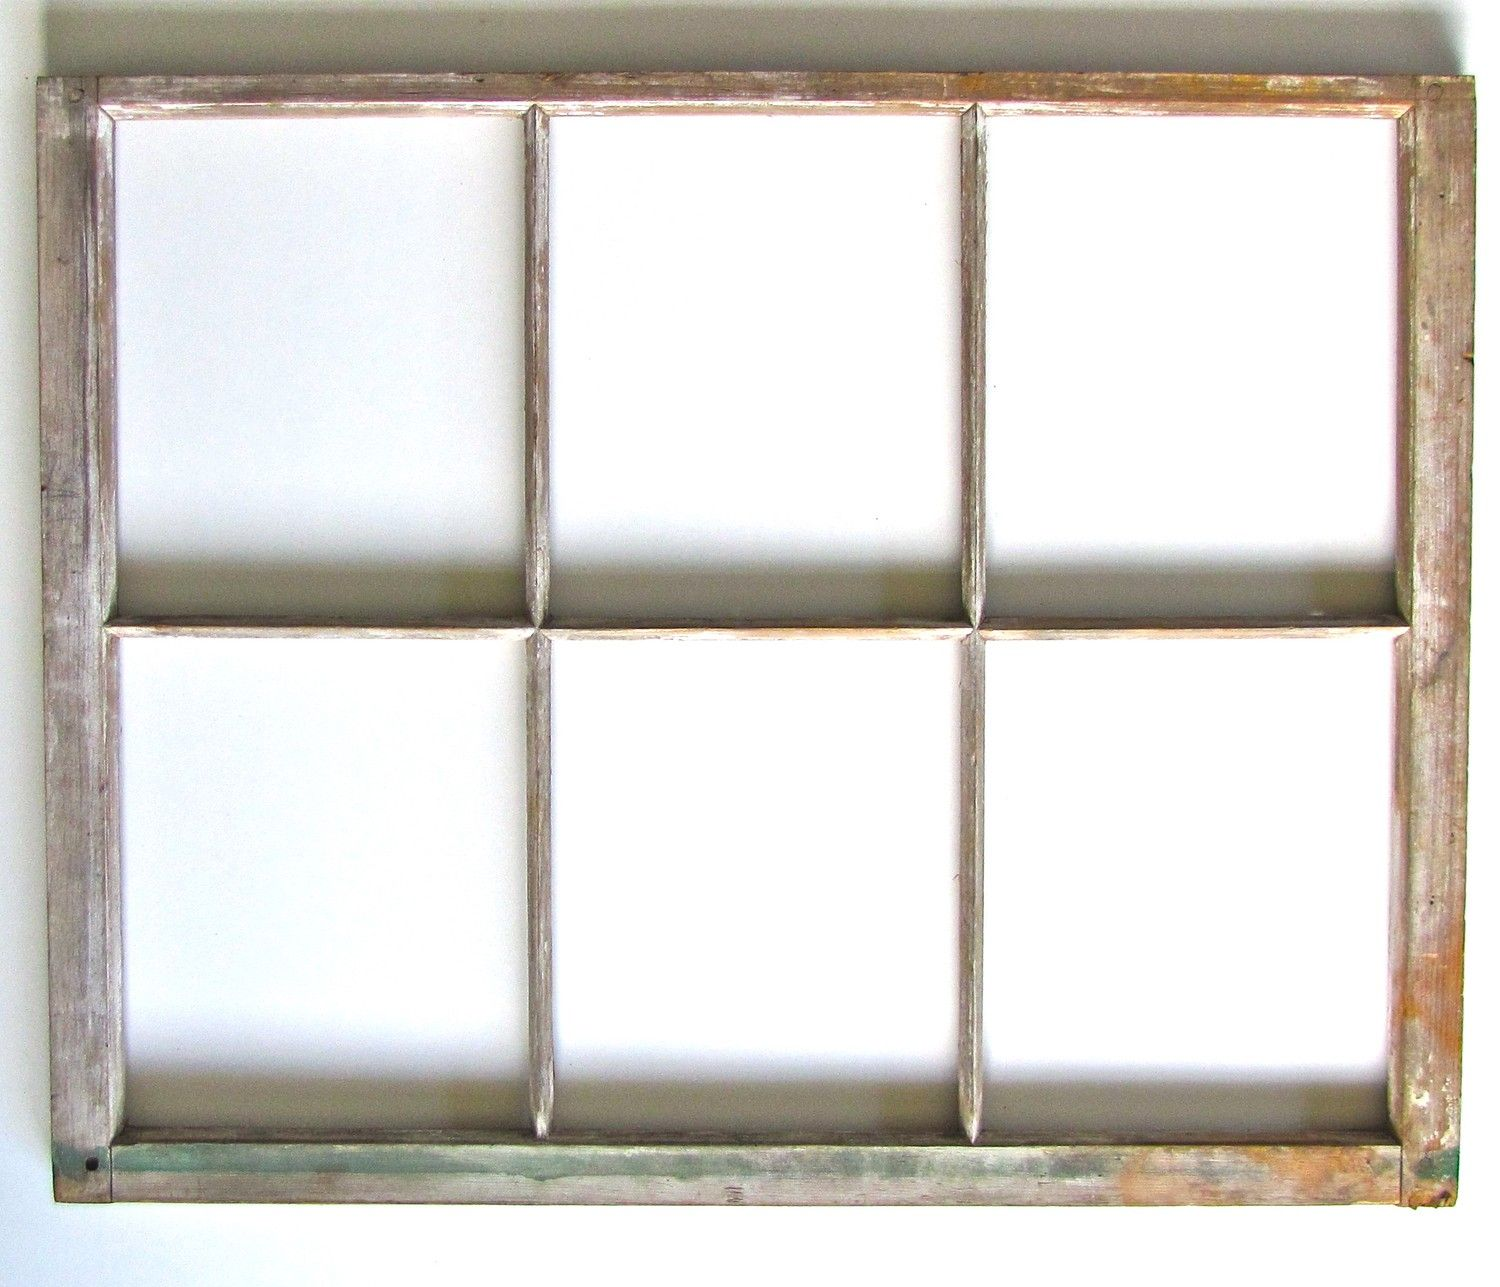 Vintage Wood Six Pane Window Frame ready for Mirror or Hanging ...